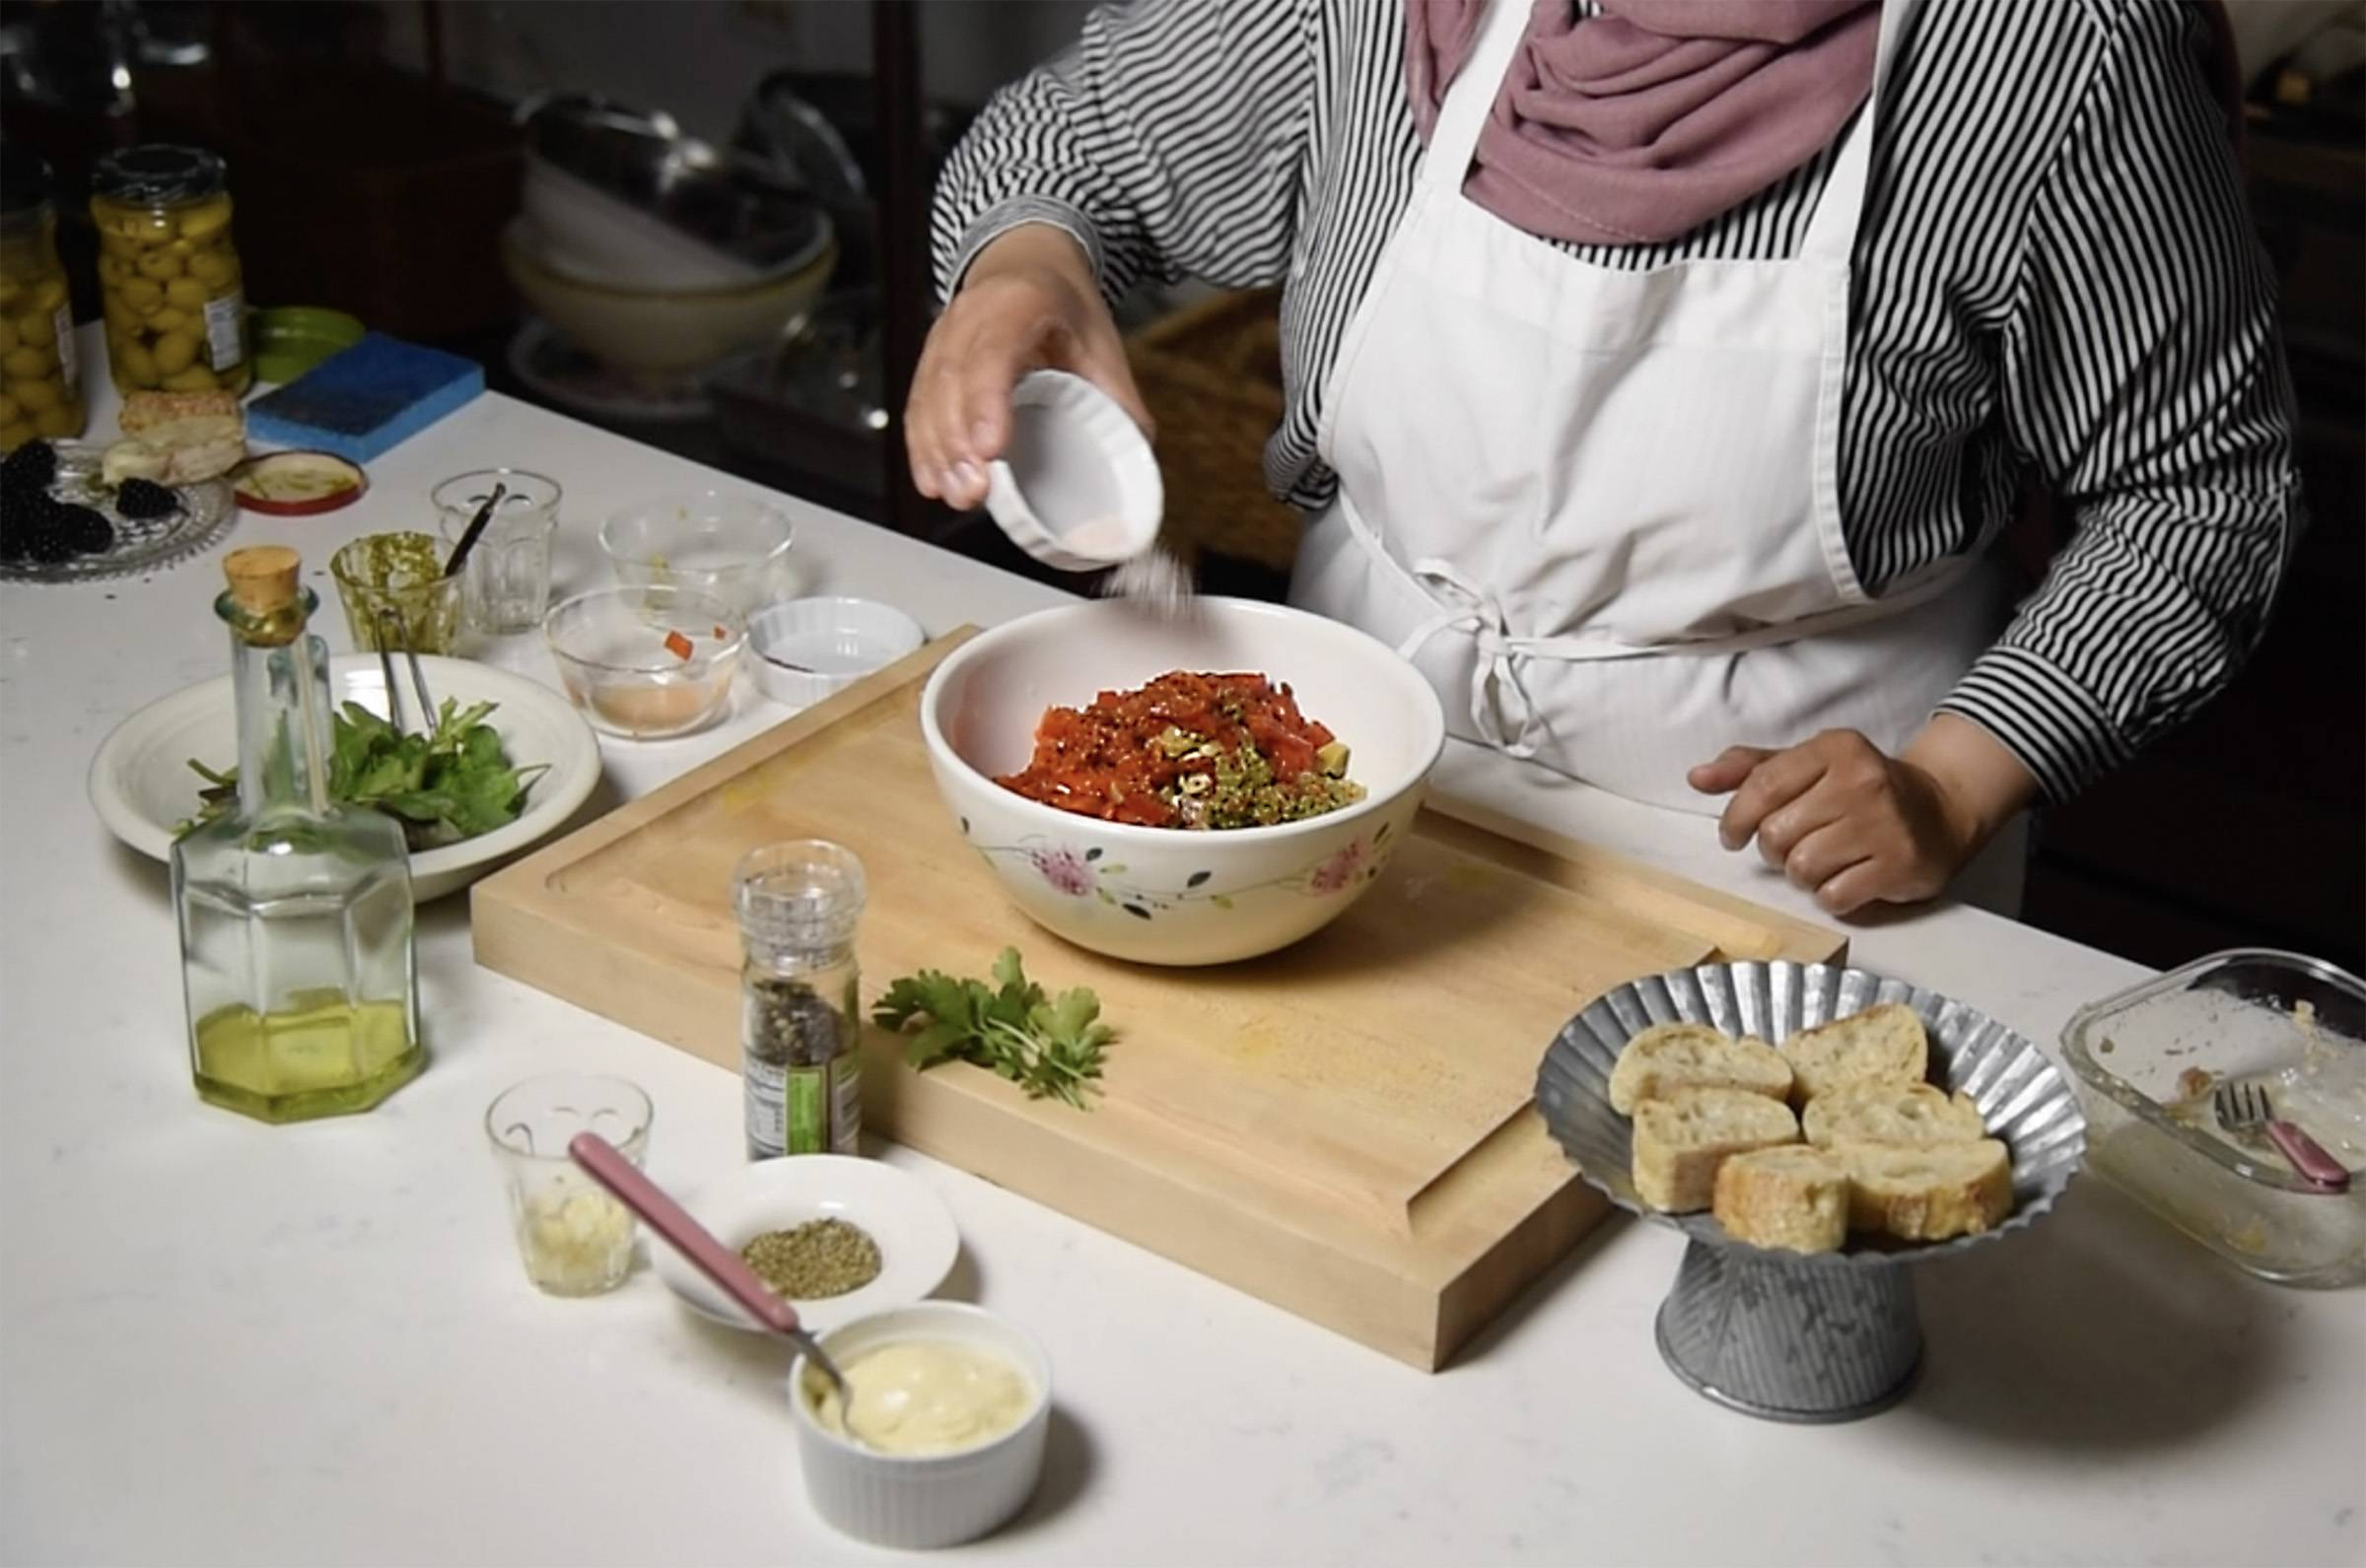 Food blogger Yvonne Maffei prepares her Ramadan recipes at her Crystal Lake home using ethnic spices and ingredients. Her kitchen is rigged for recording how-to videos for her blog, in which she focuses on healthy cooking for Ramadan.